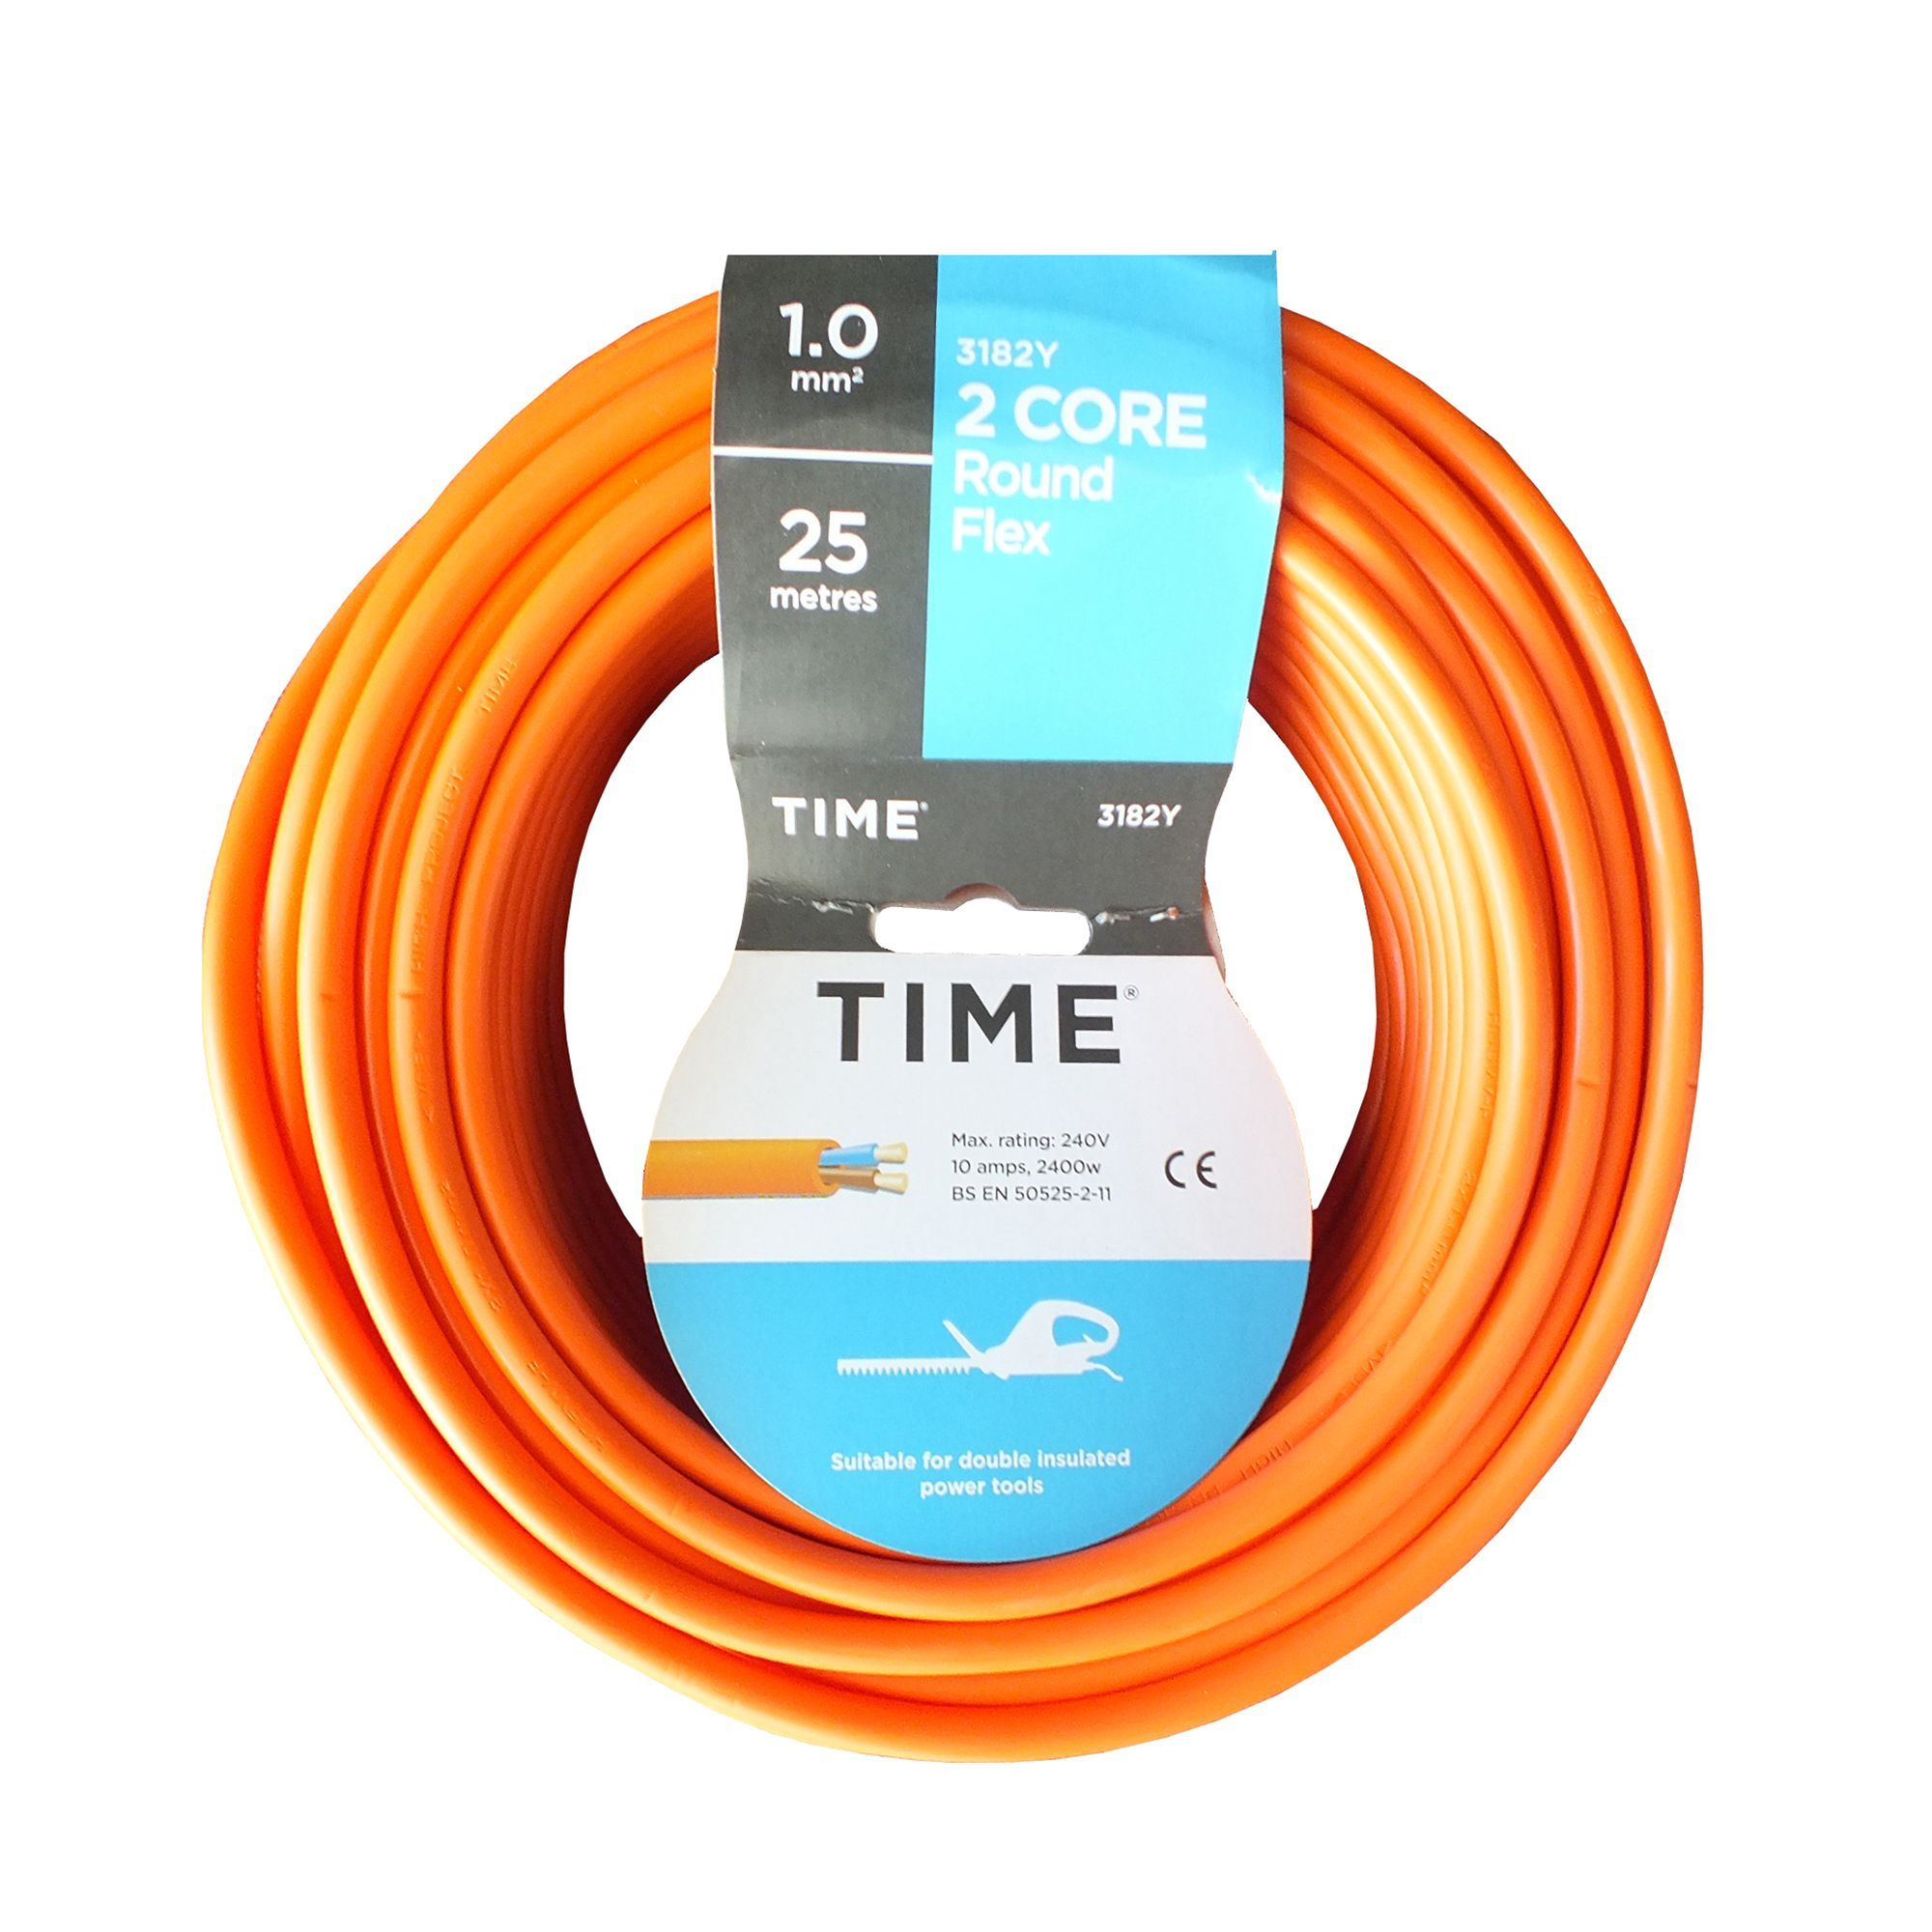 Time 2 Core Round Flexible Cable 1.0mm² 3182Y Orange 25m | Departments | DIY at B&Q